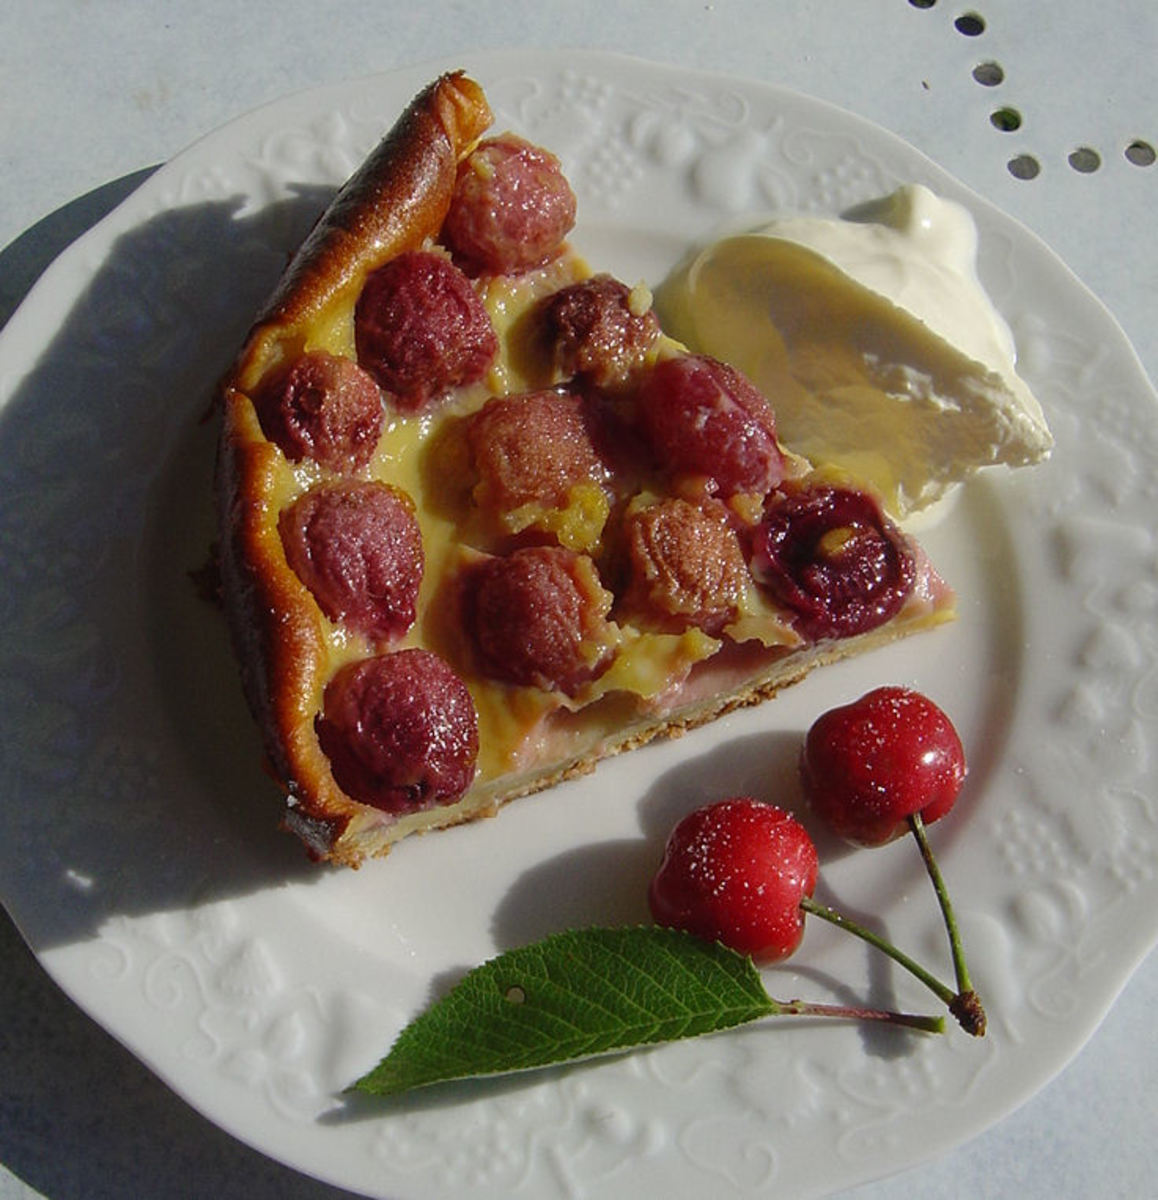 Cherry Clafouti, delicious hot or cold and served with creme fraiche and a couple of fresh cherries